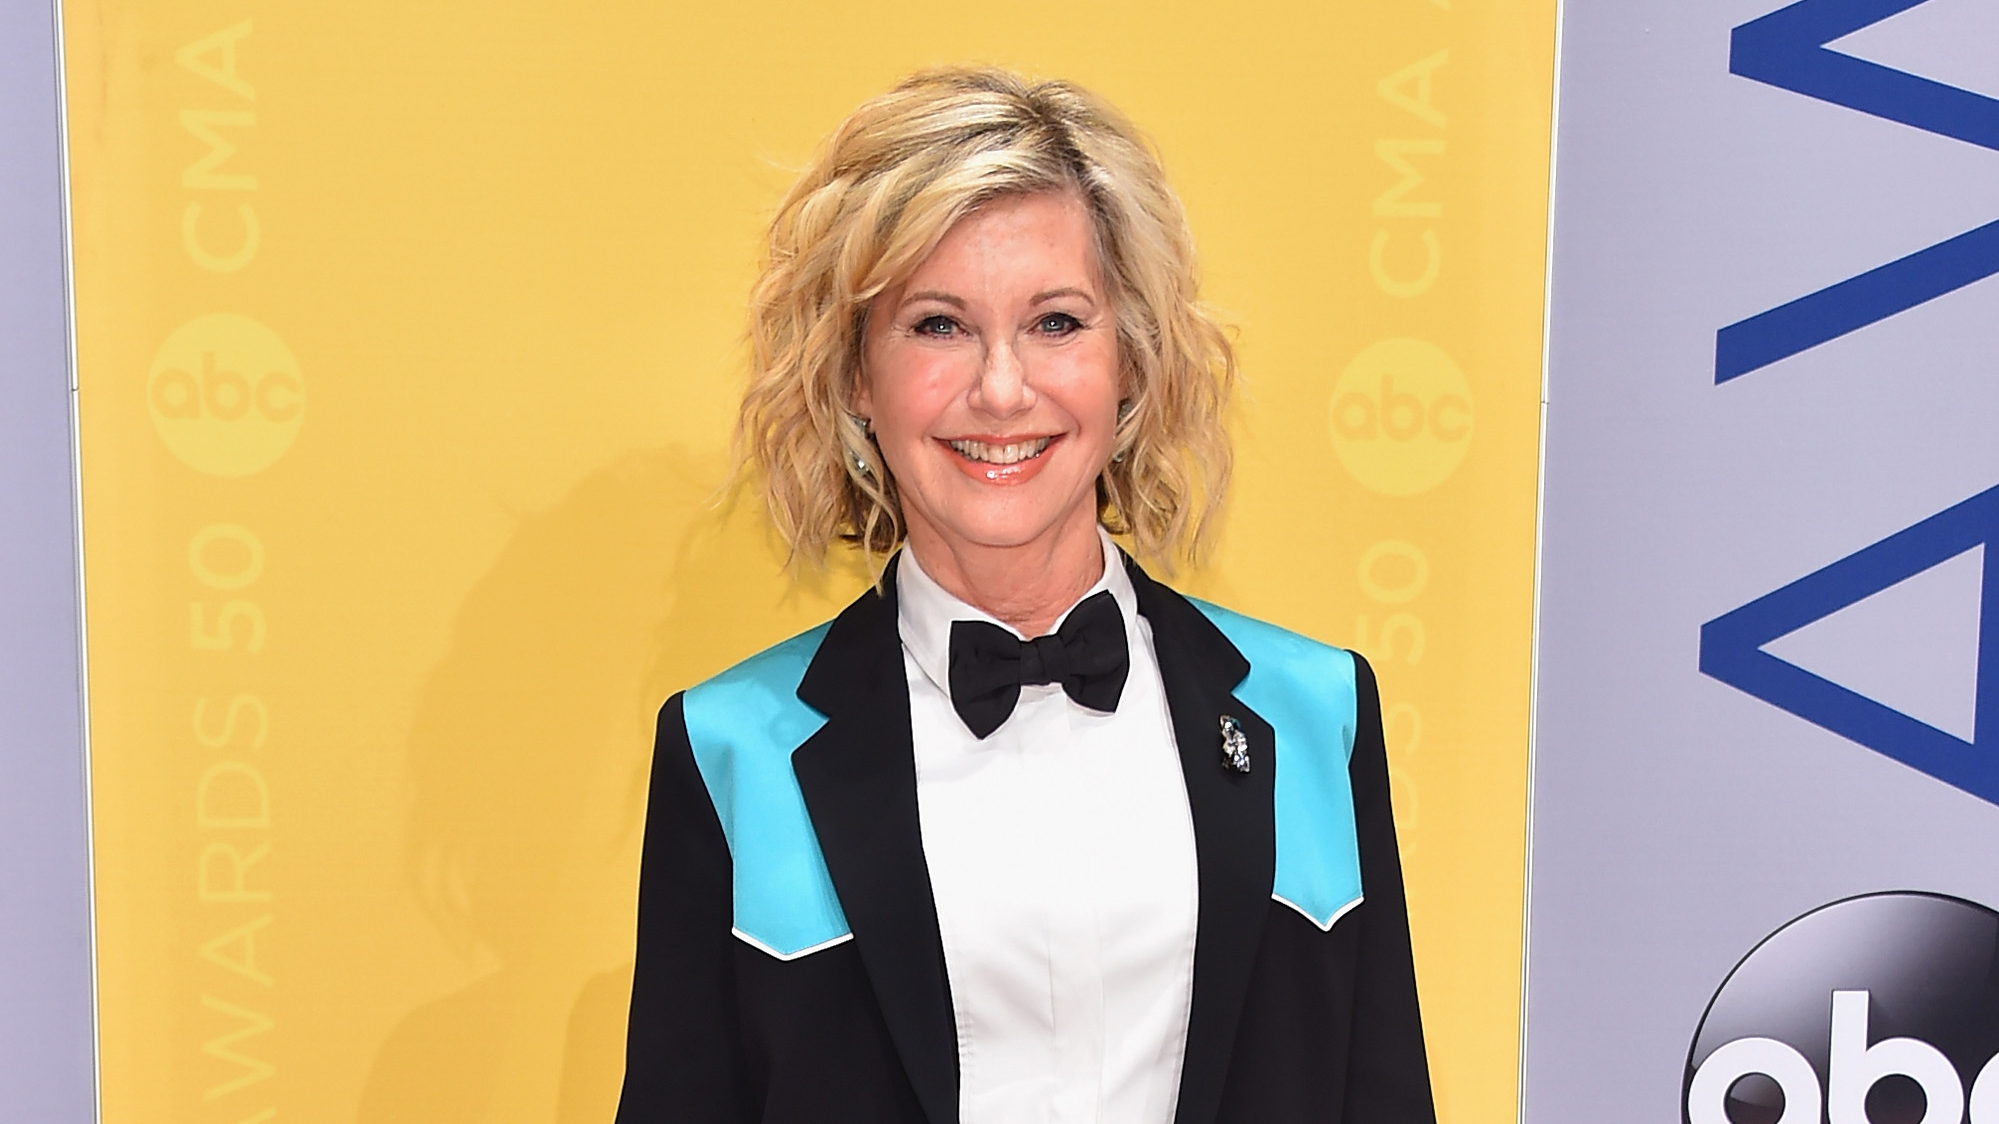 Olivia Newton-John Gushes About Becoming a Grandmother One Day: 'I Would Love That'